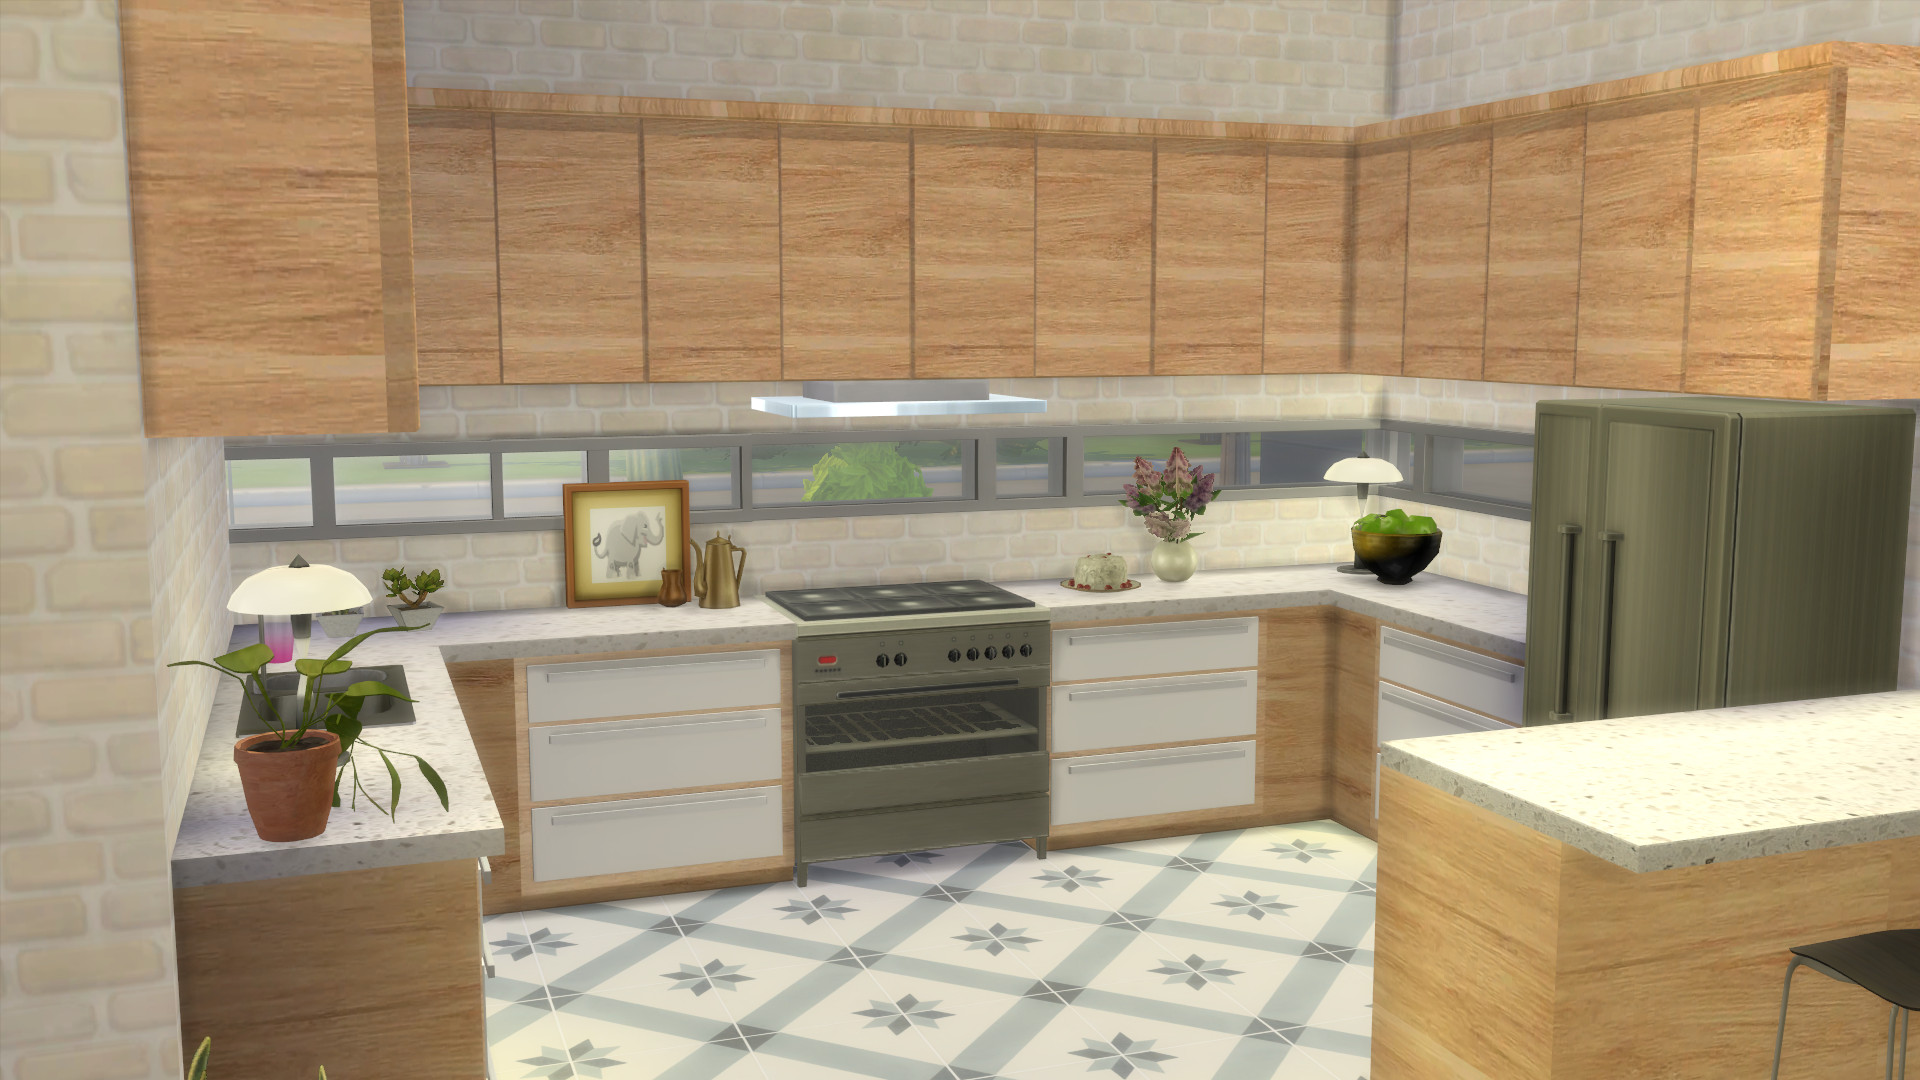 sims 2 kitchen cabinets mod the sims kitchen from patio stuff no 26141